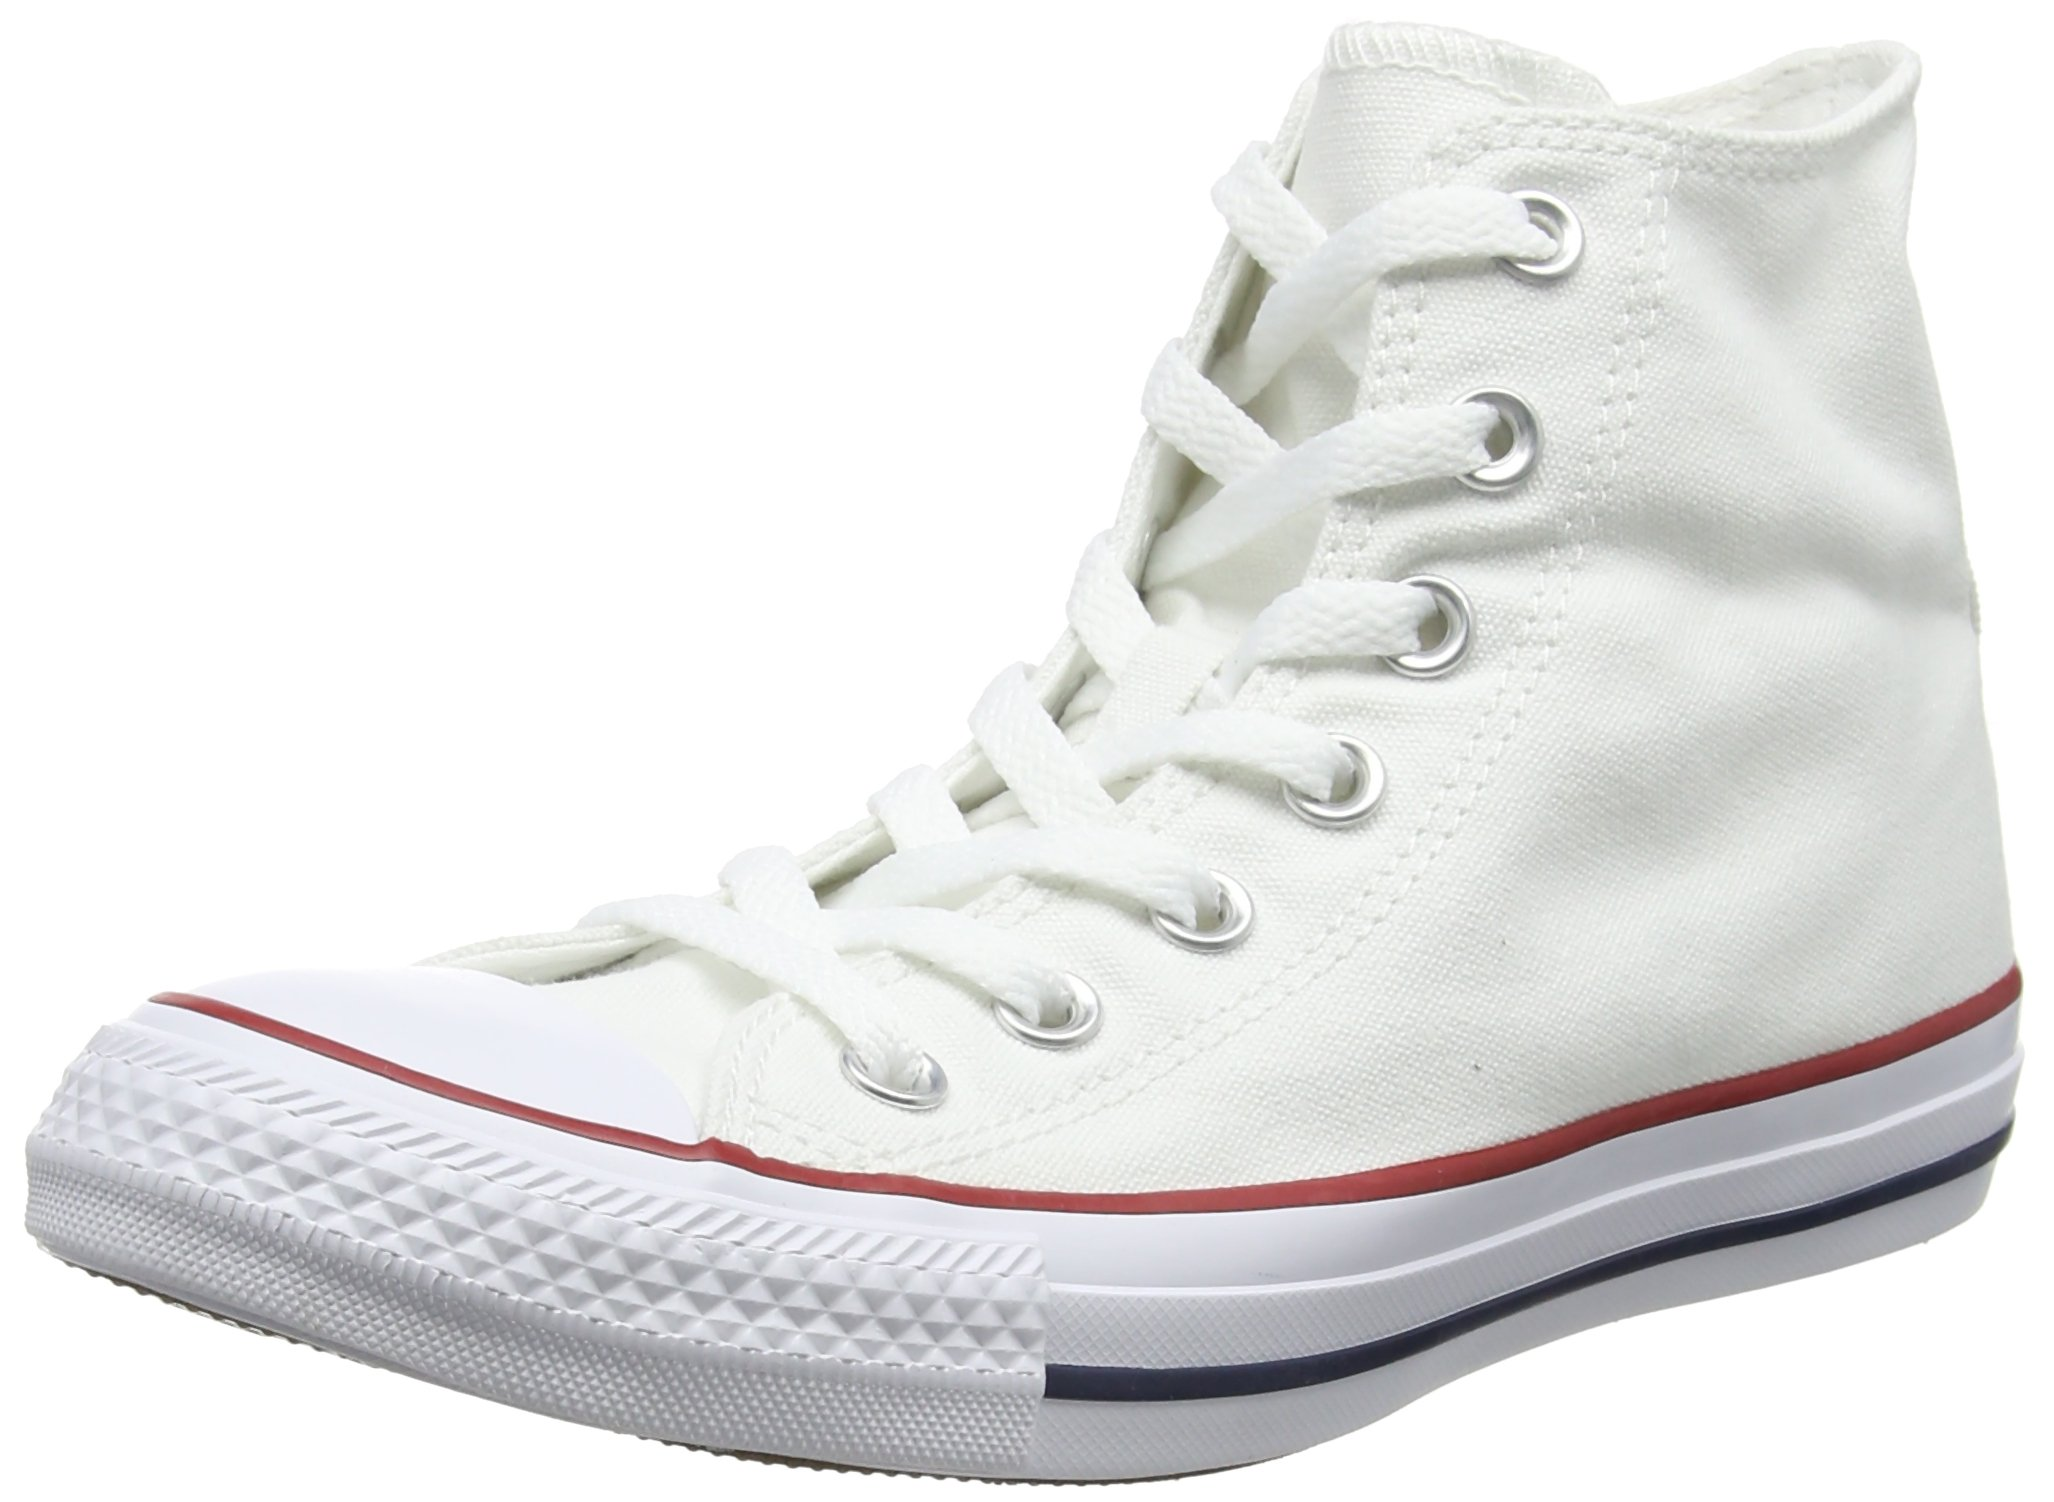 Converse Chuck Taylor All Star Hi-Top (Junior) Kids Trainer - Optical White, 11